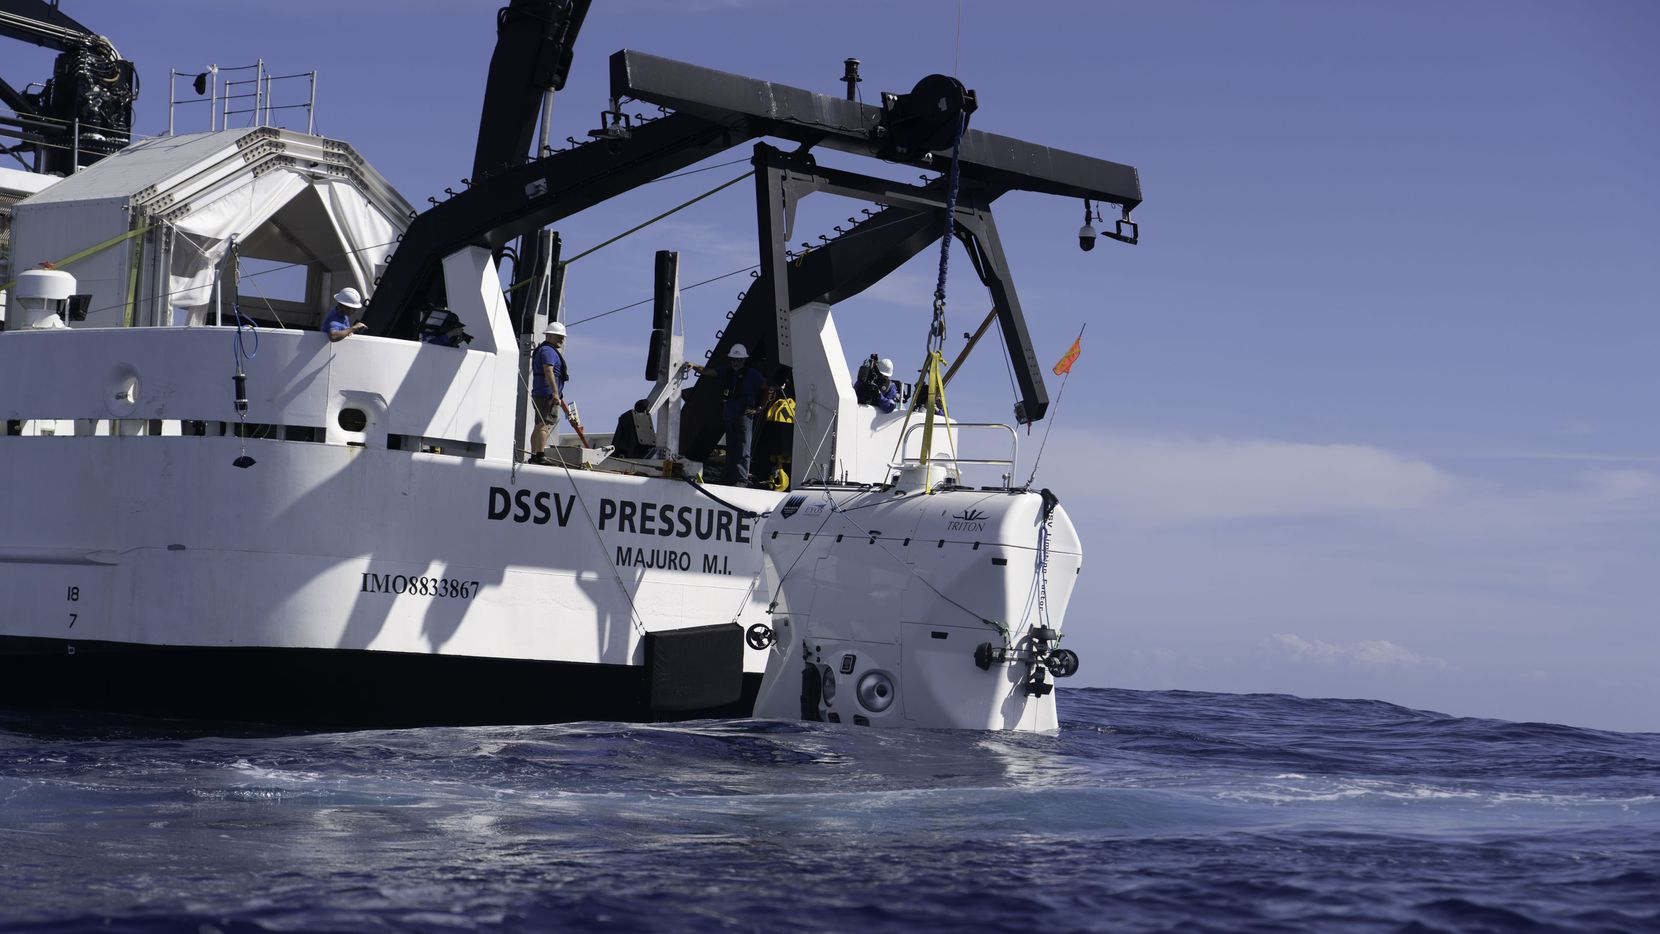 The Five Deeps Expedition lowers the Limiting Factor submersible into the ocean off the coast of Puerto Rico.